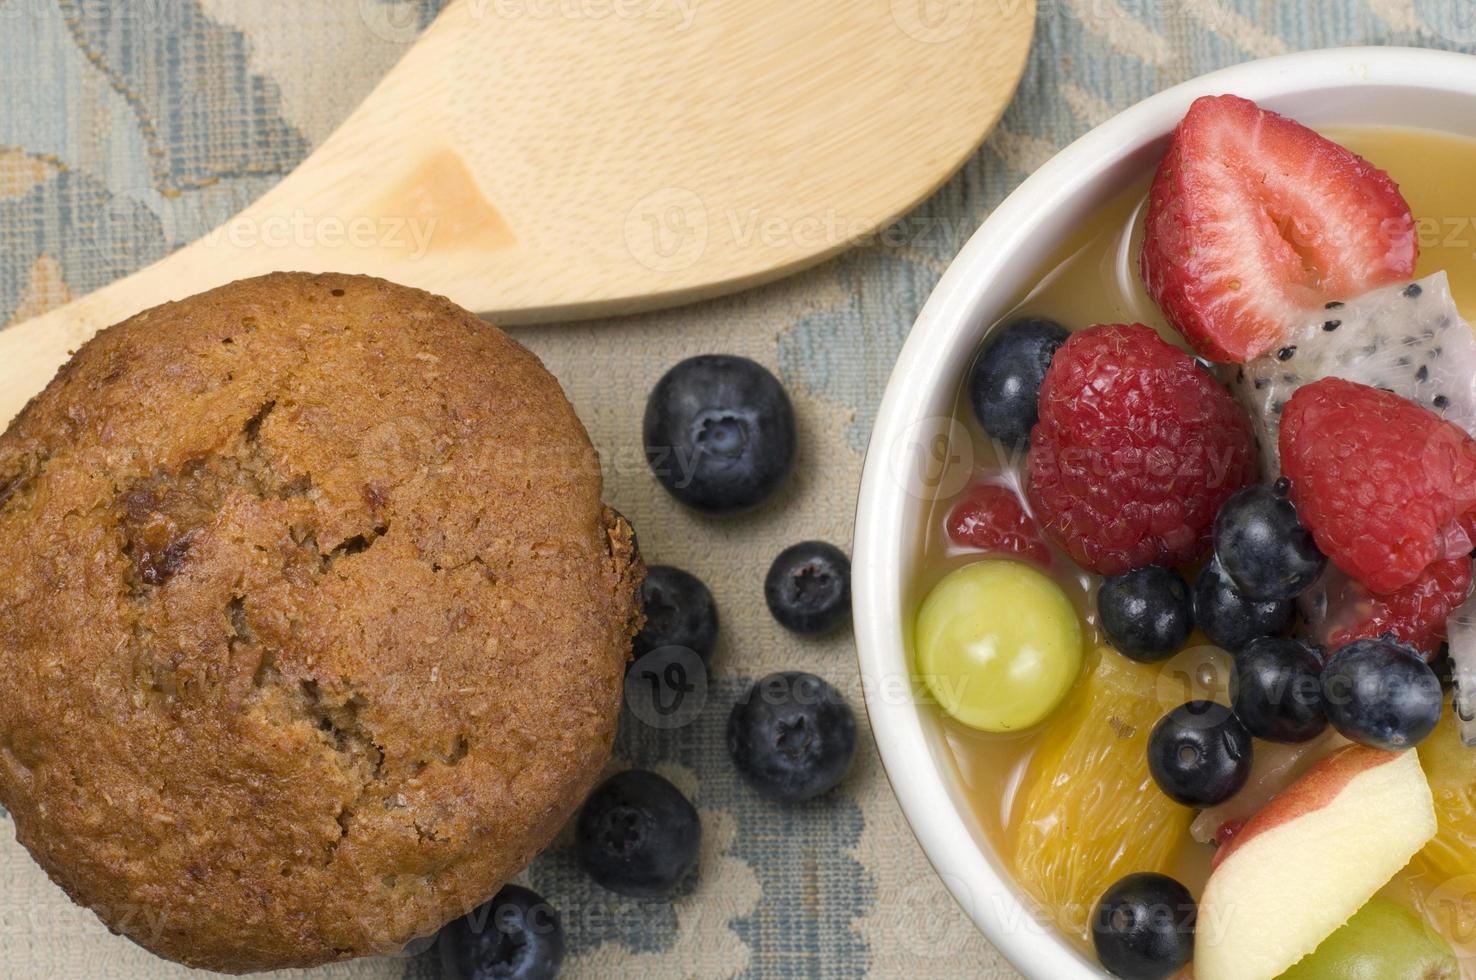 Fruit Salad with Bran Muffin and Wood Spoon photo